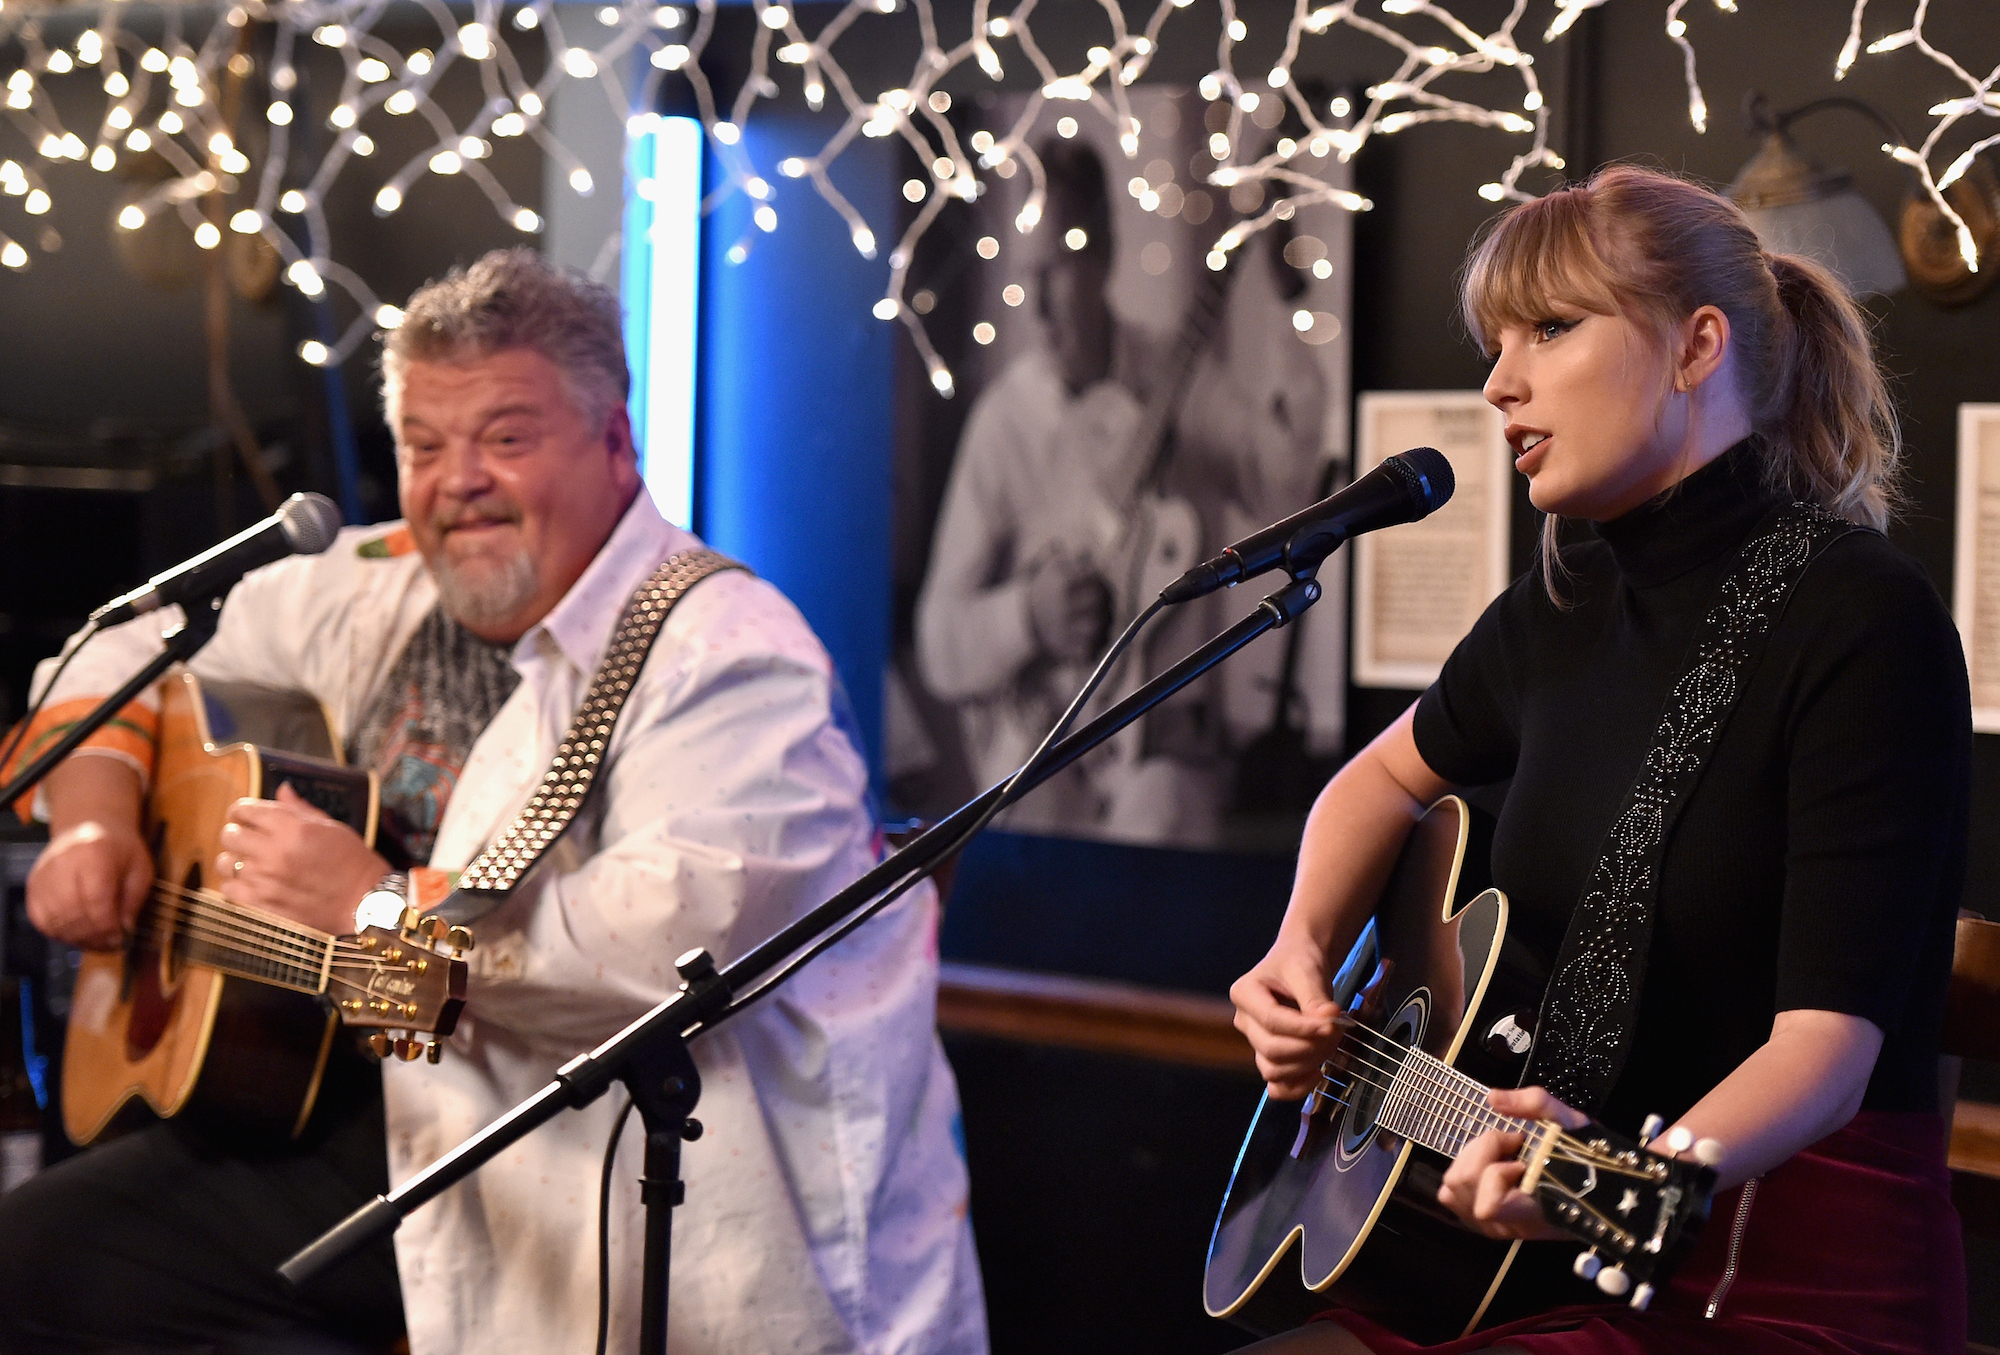 Taylor Swift Gives Surprise Performance and Does Shots Onstage in Nashville